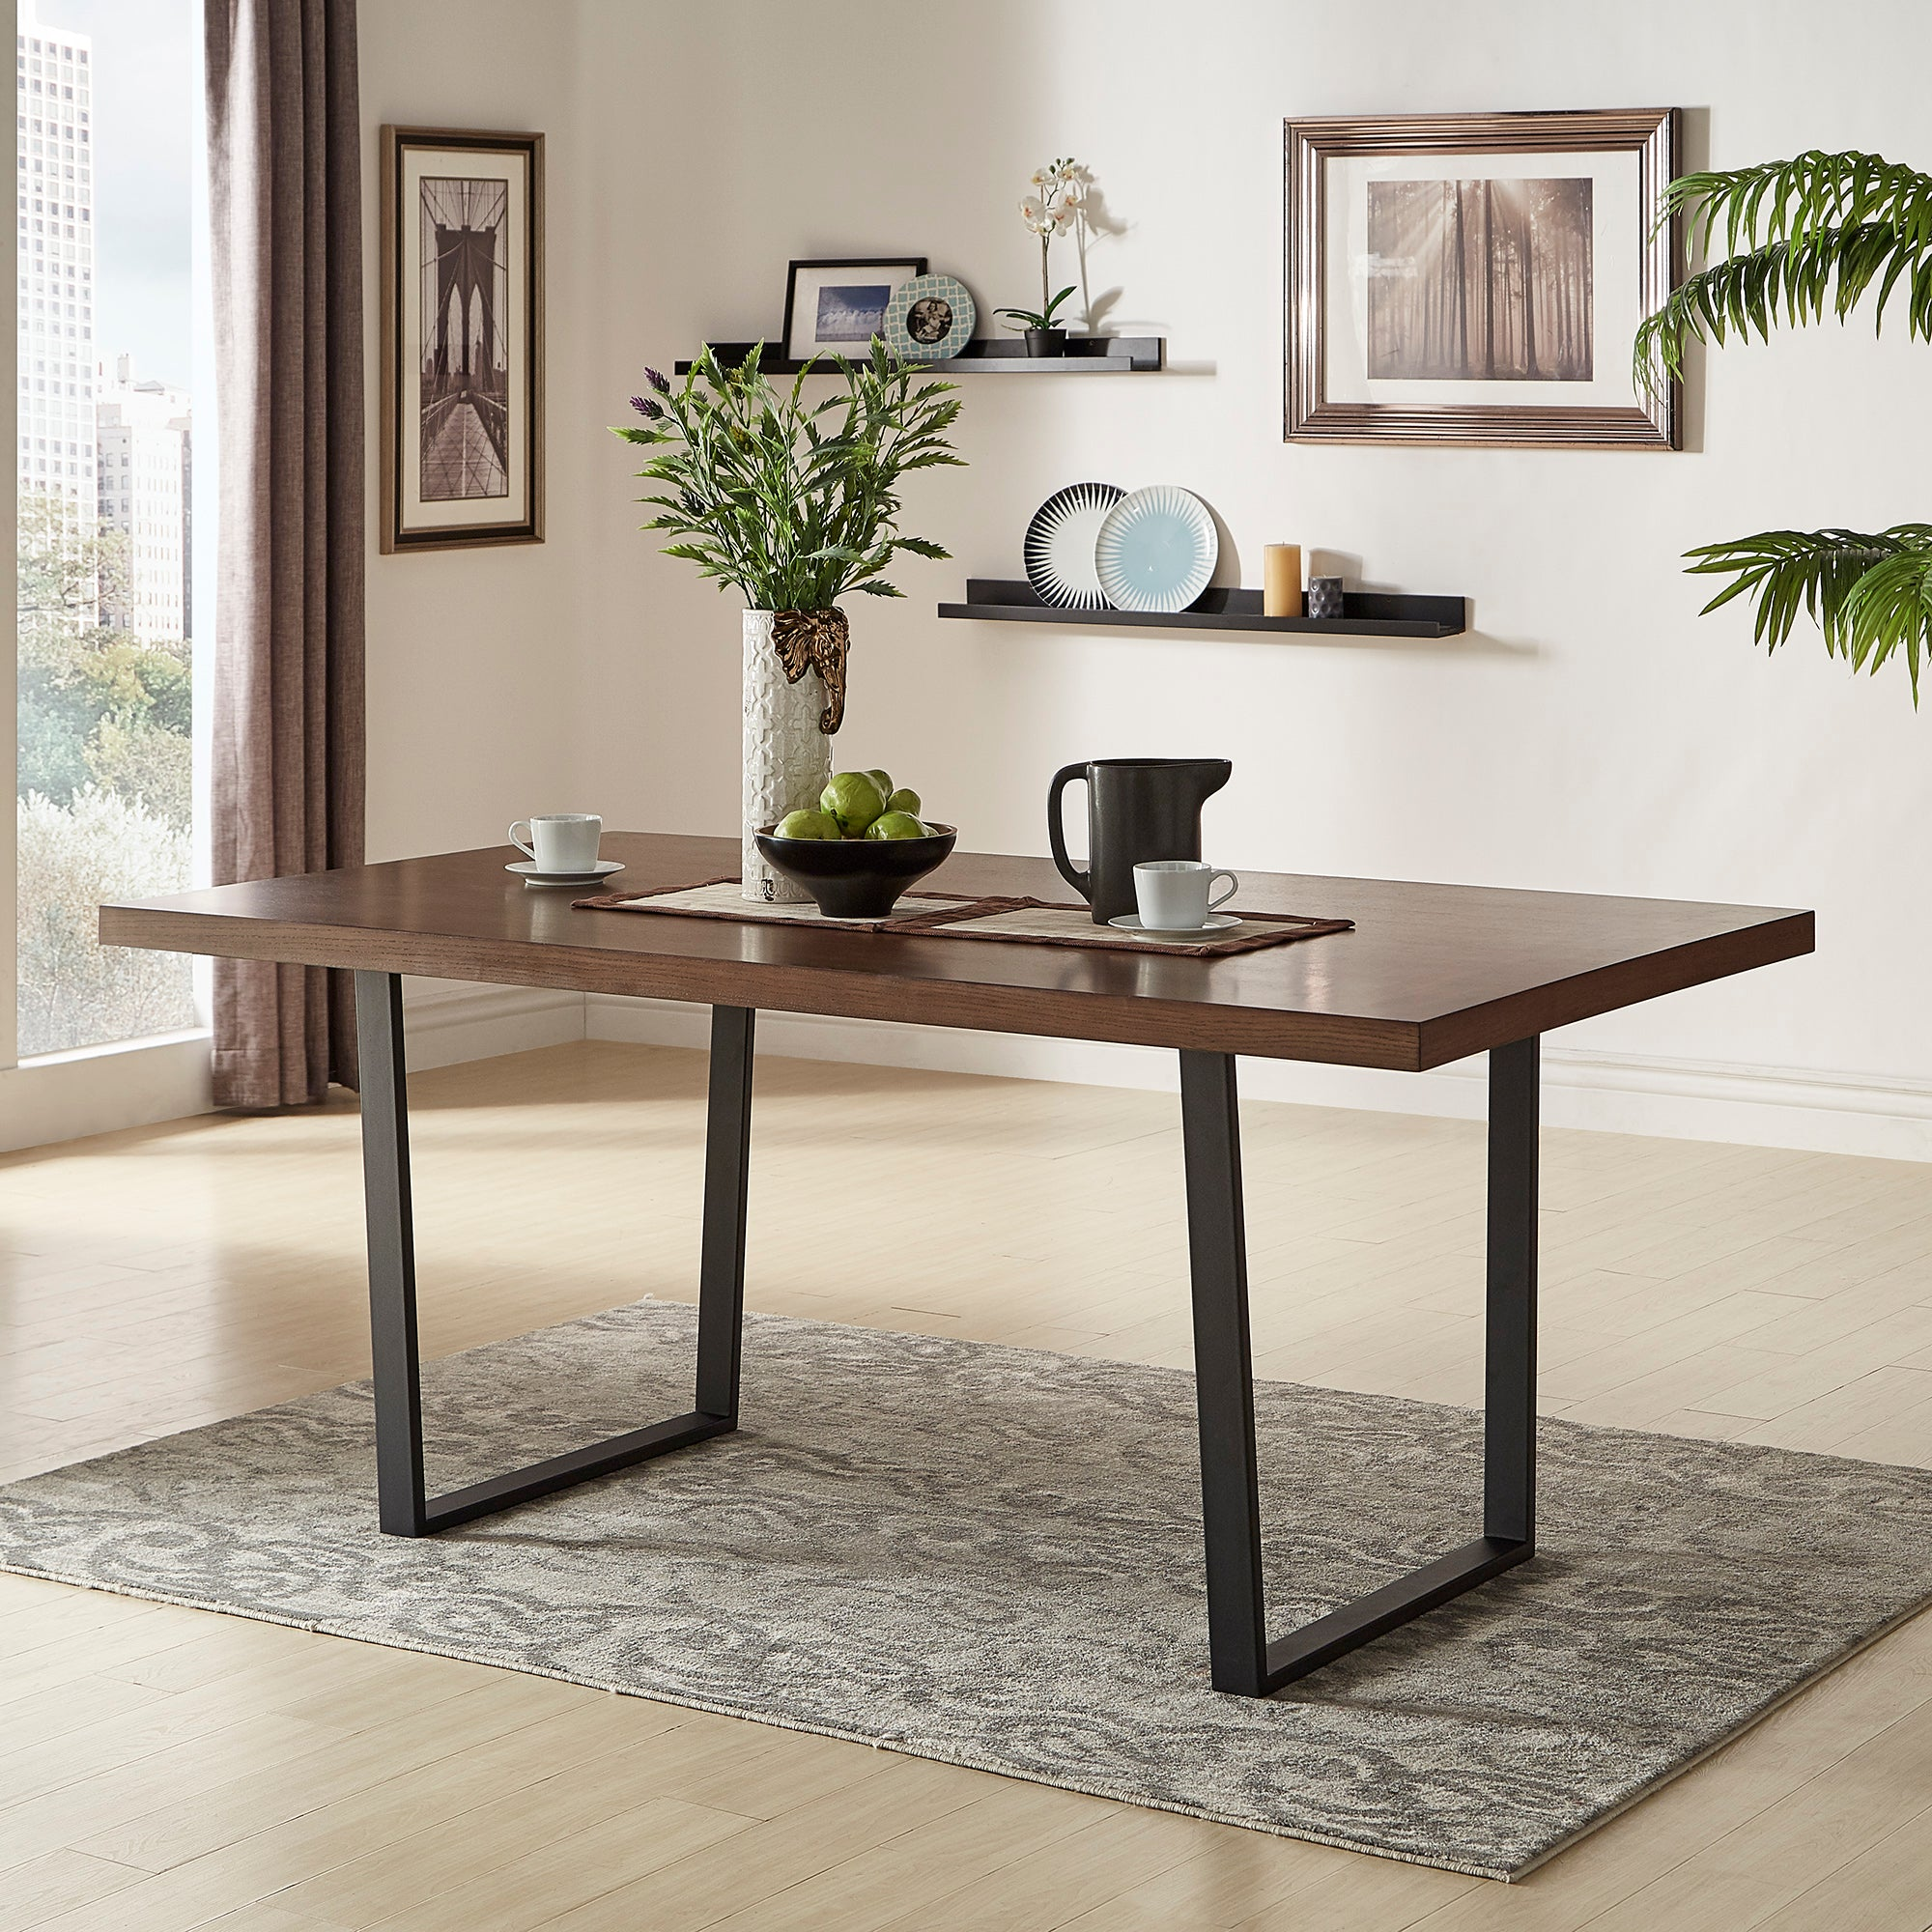 Metal Sled Base Dining Table - Dark Walnut Finish Top